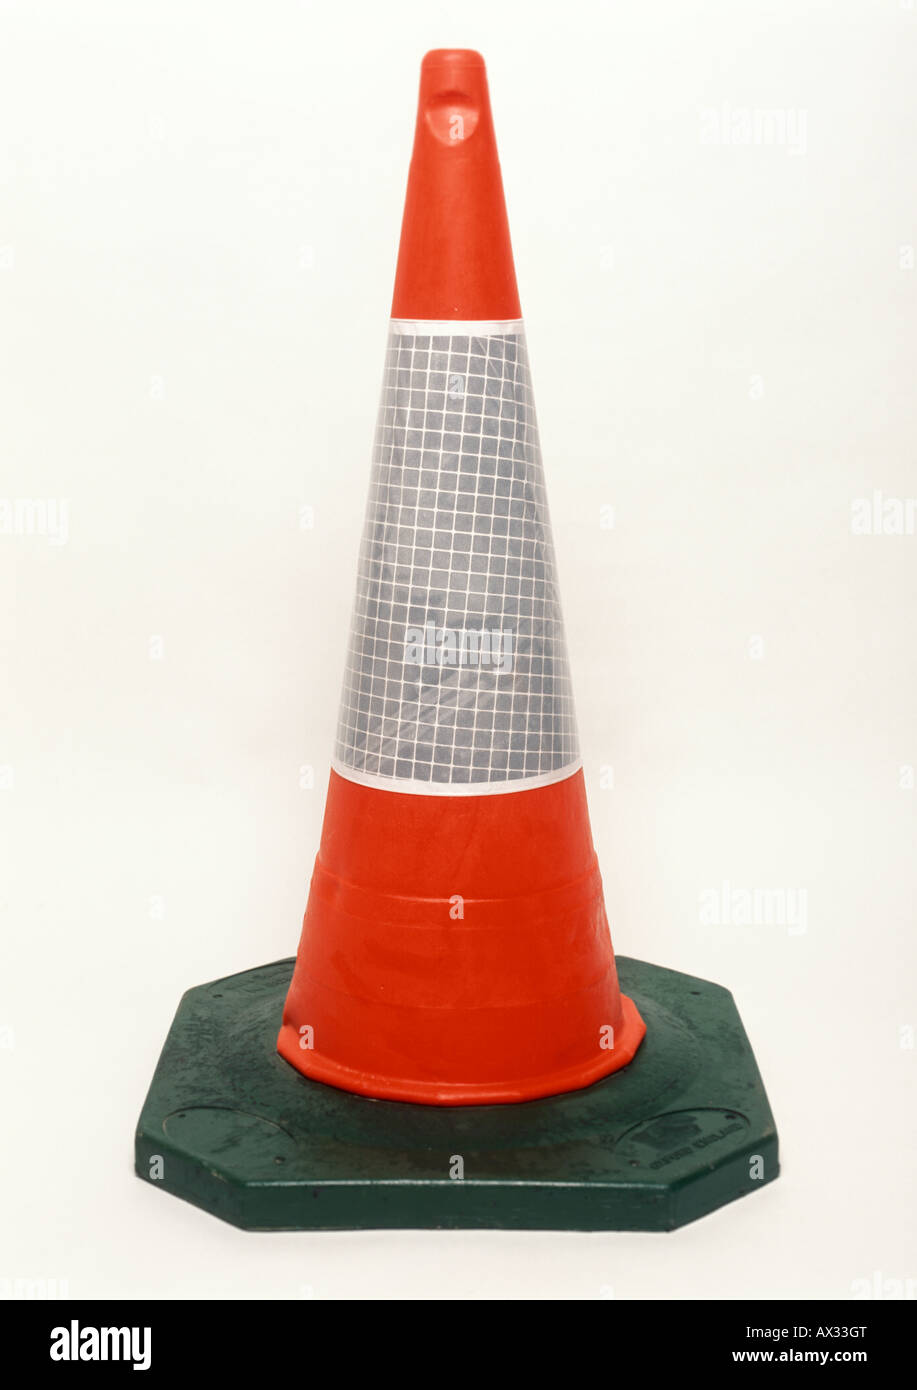 A road traffic cone on white background - Stock Image